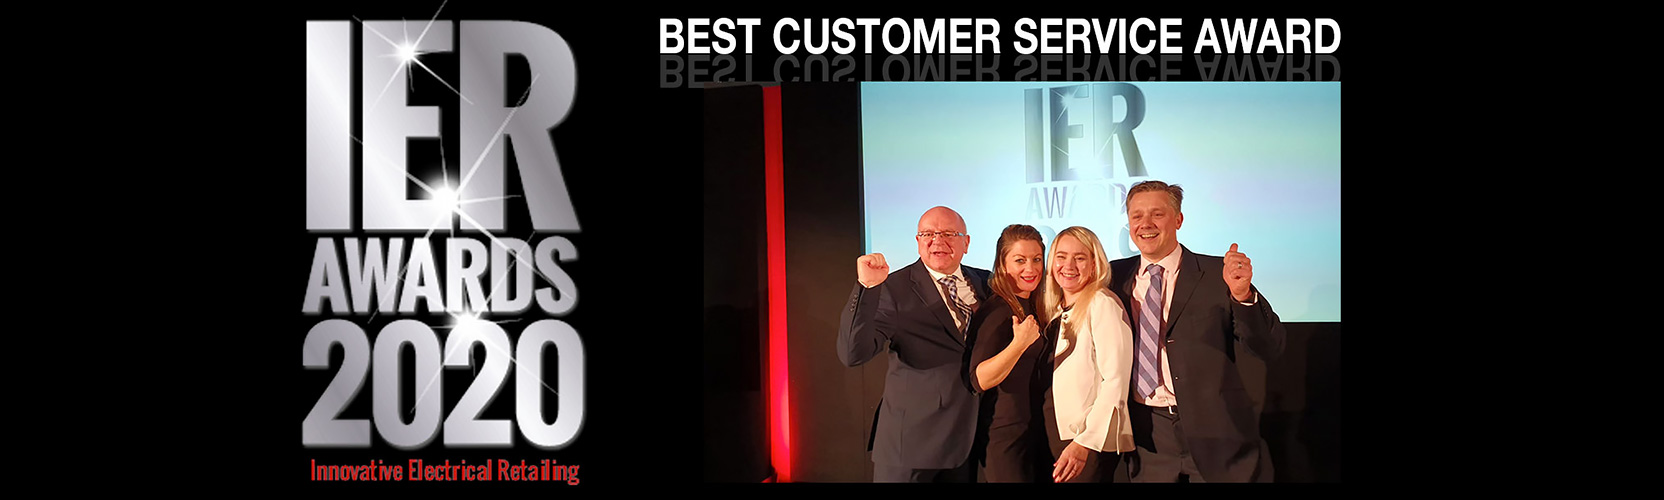 Forbes Rentals receiving the award for Best Customer Service